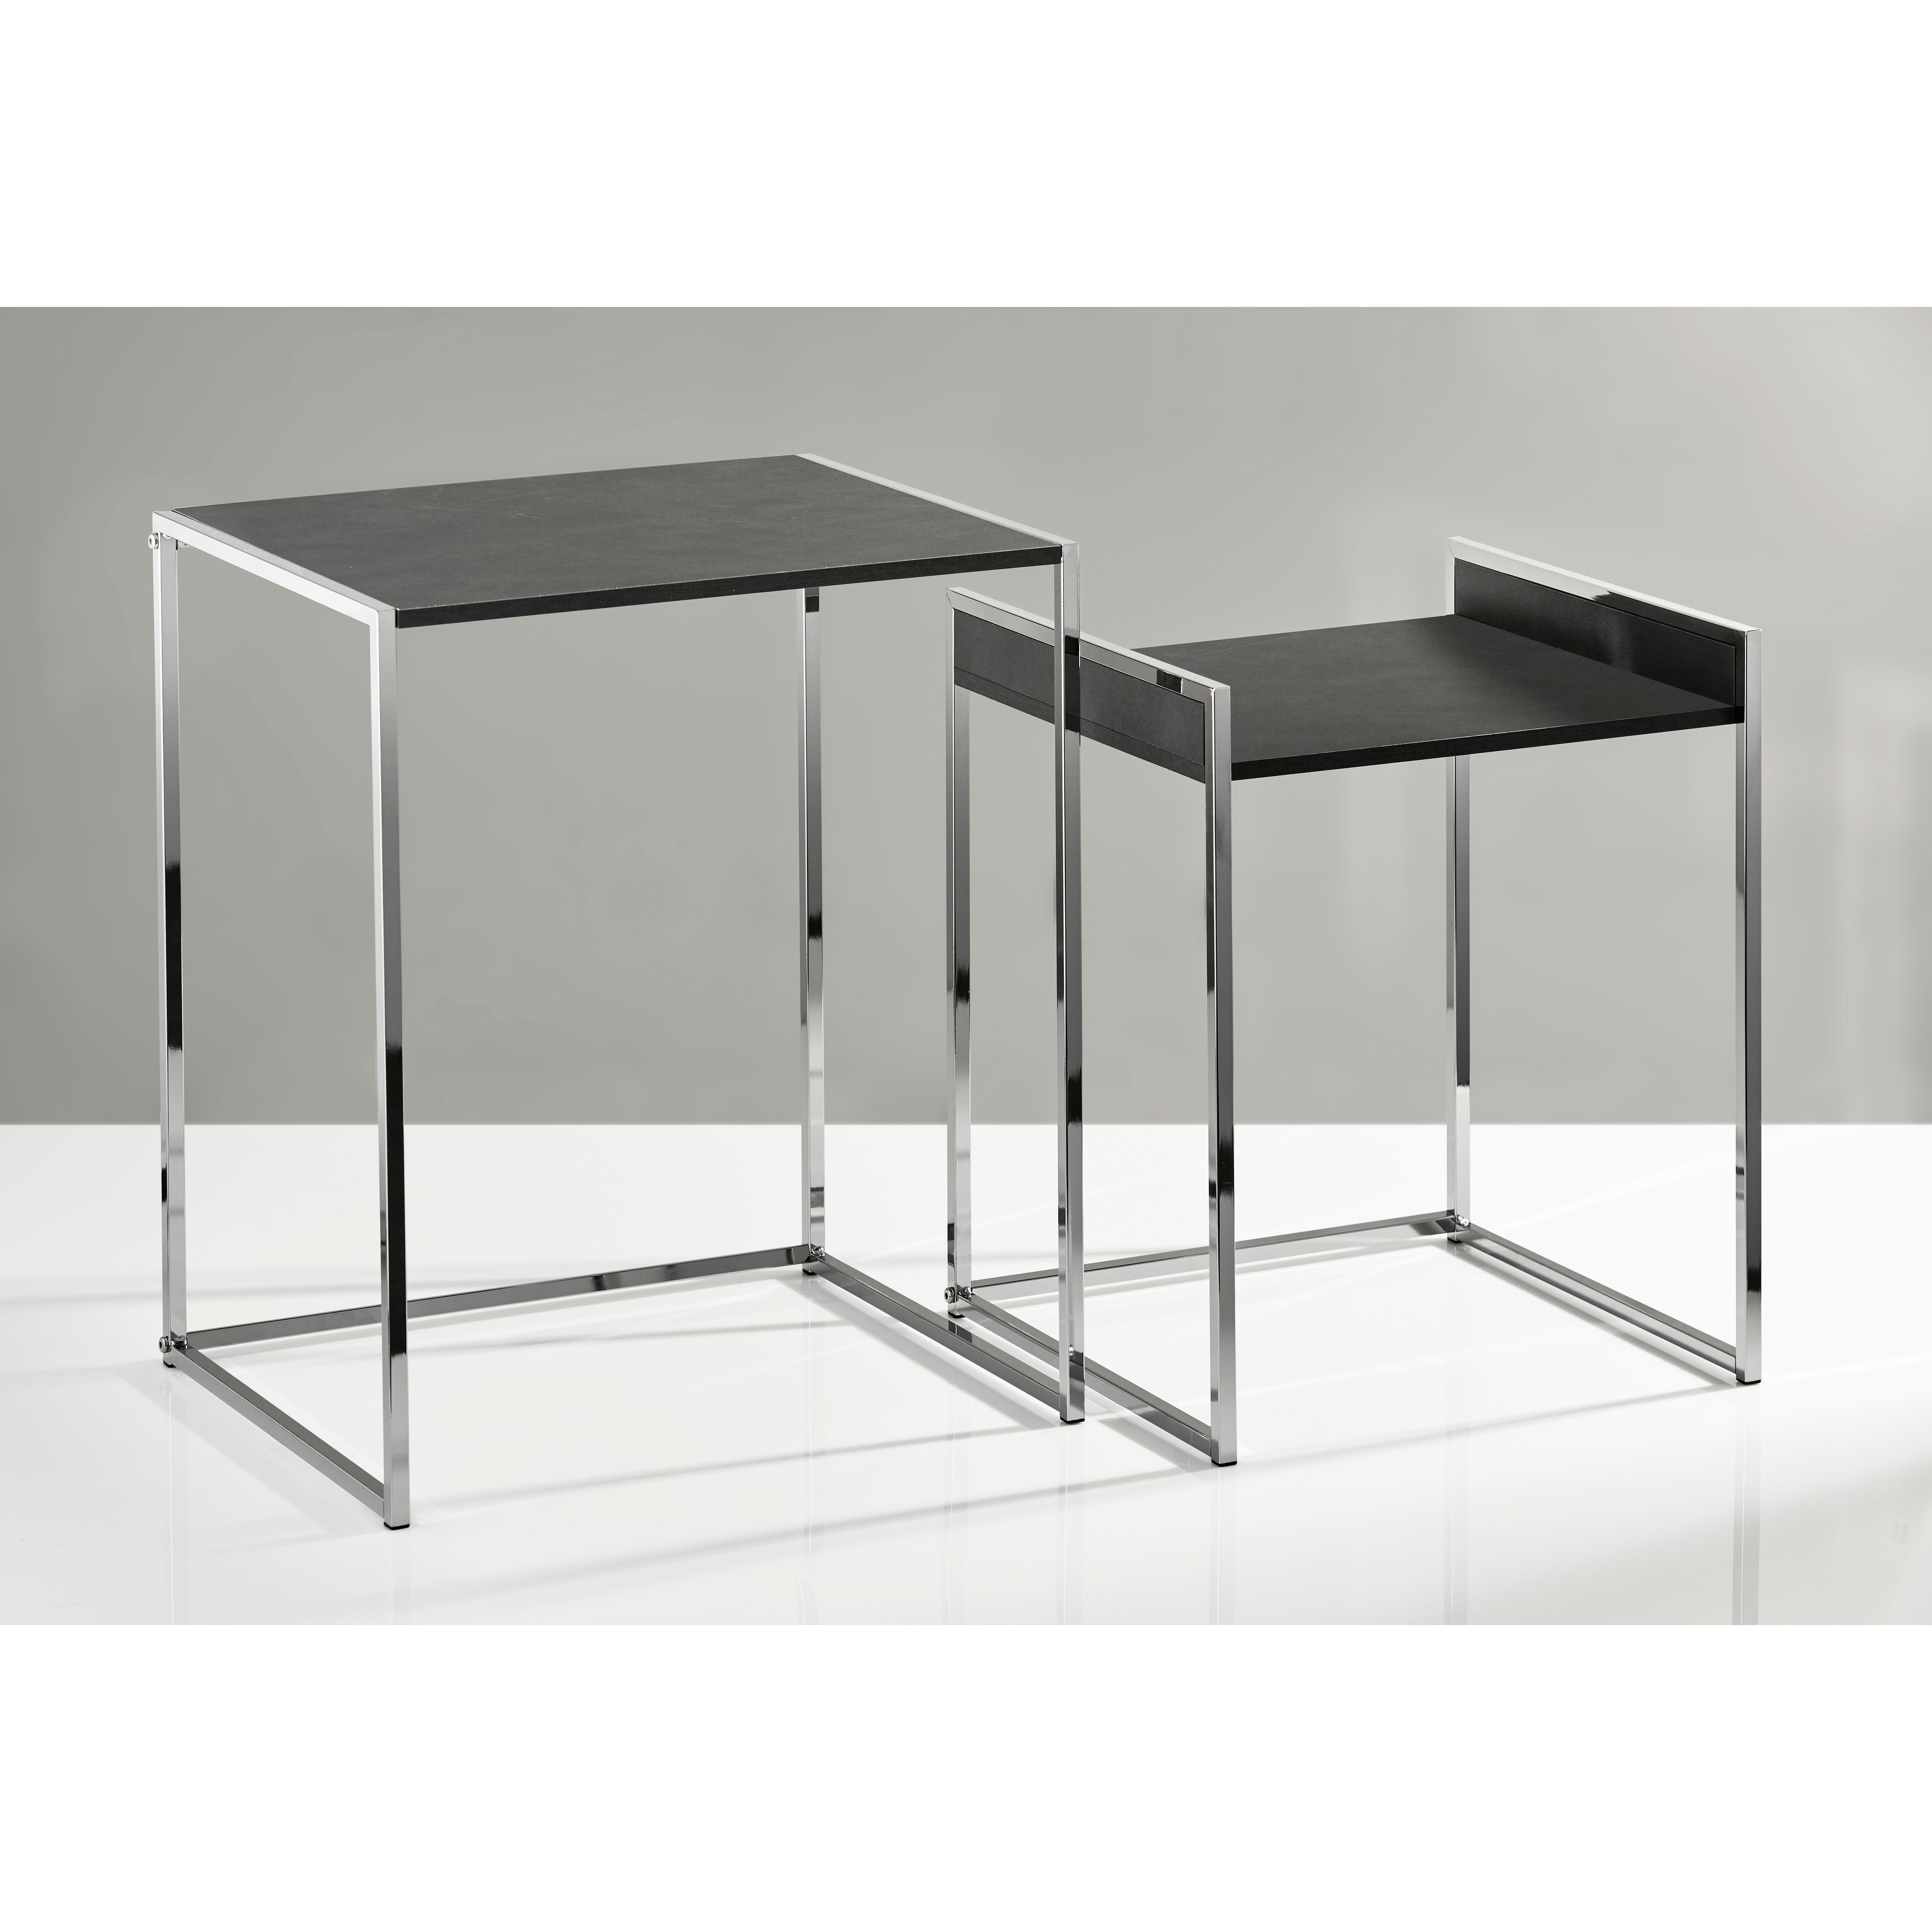 adesso ryder nesting tables free shipping today small accent table target mirrored shabby chic lamps black pedestal side ethan allen entertainment center outdoor buffet with